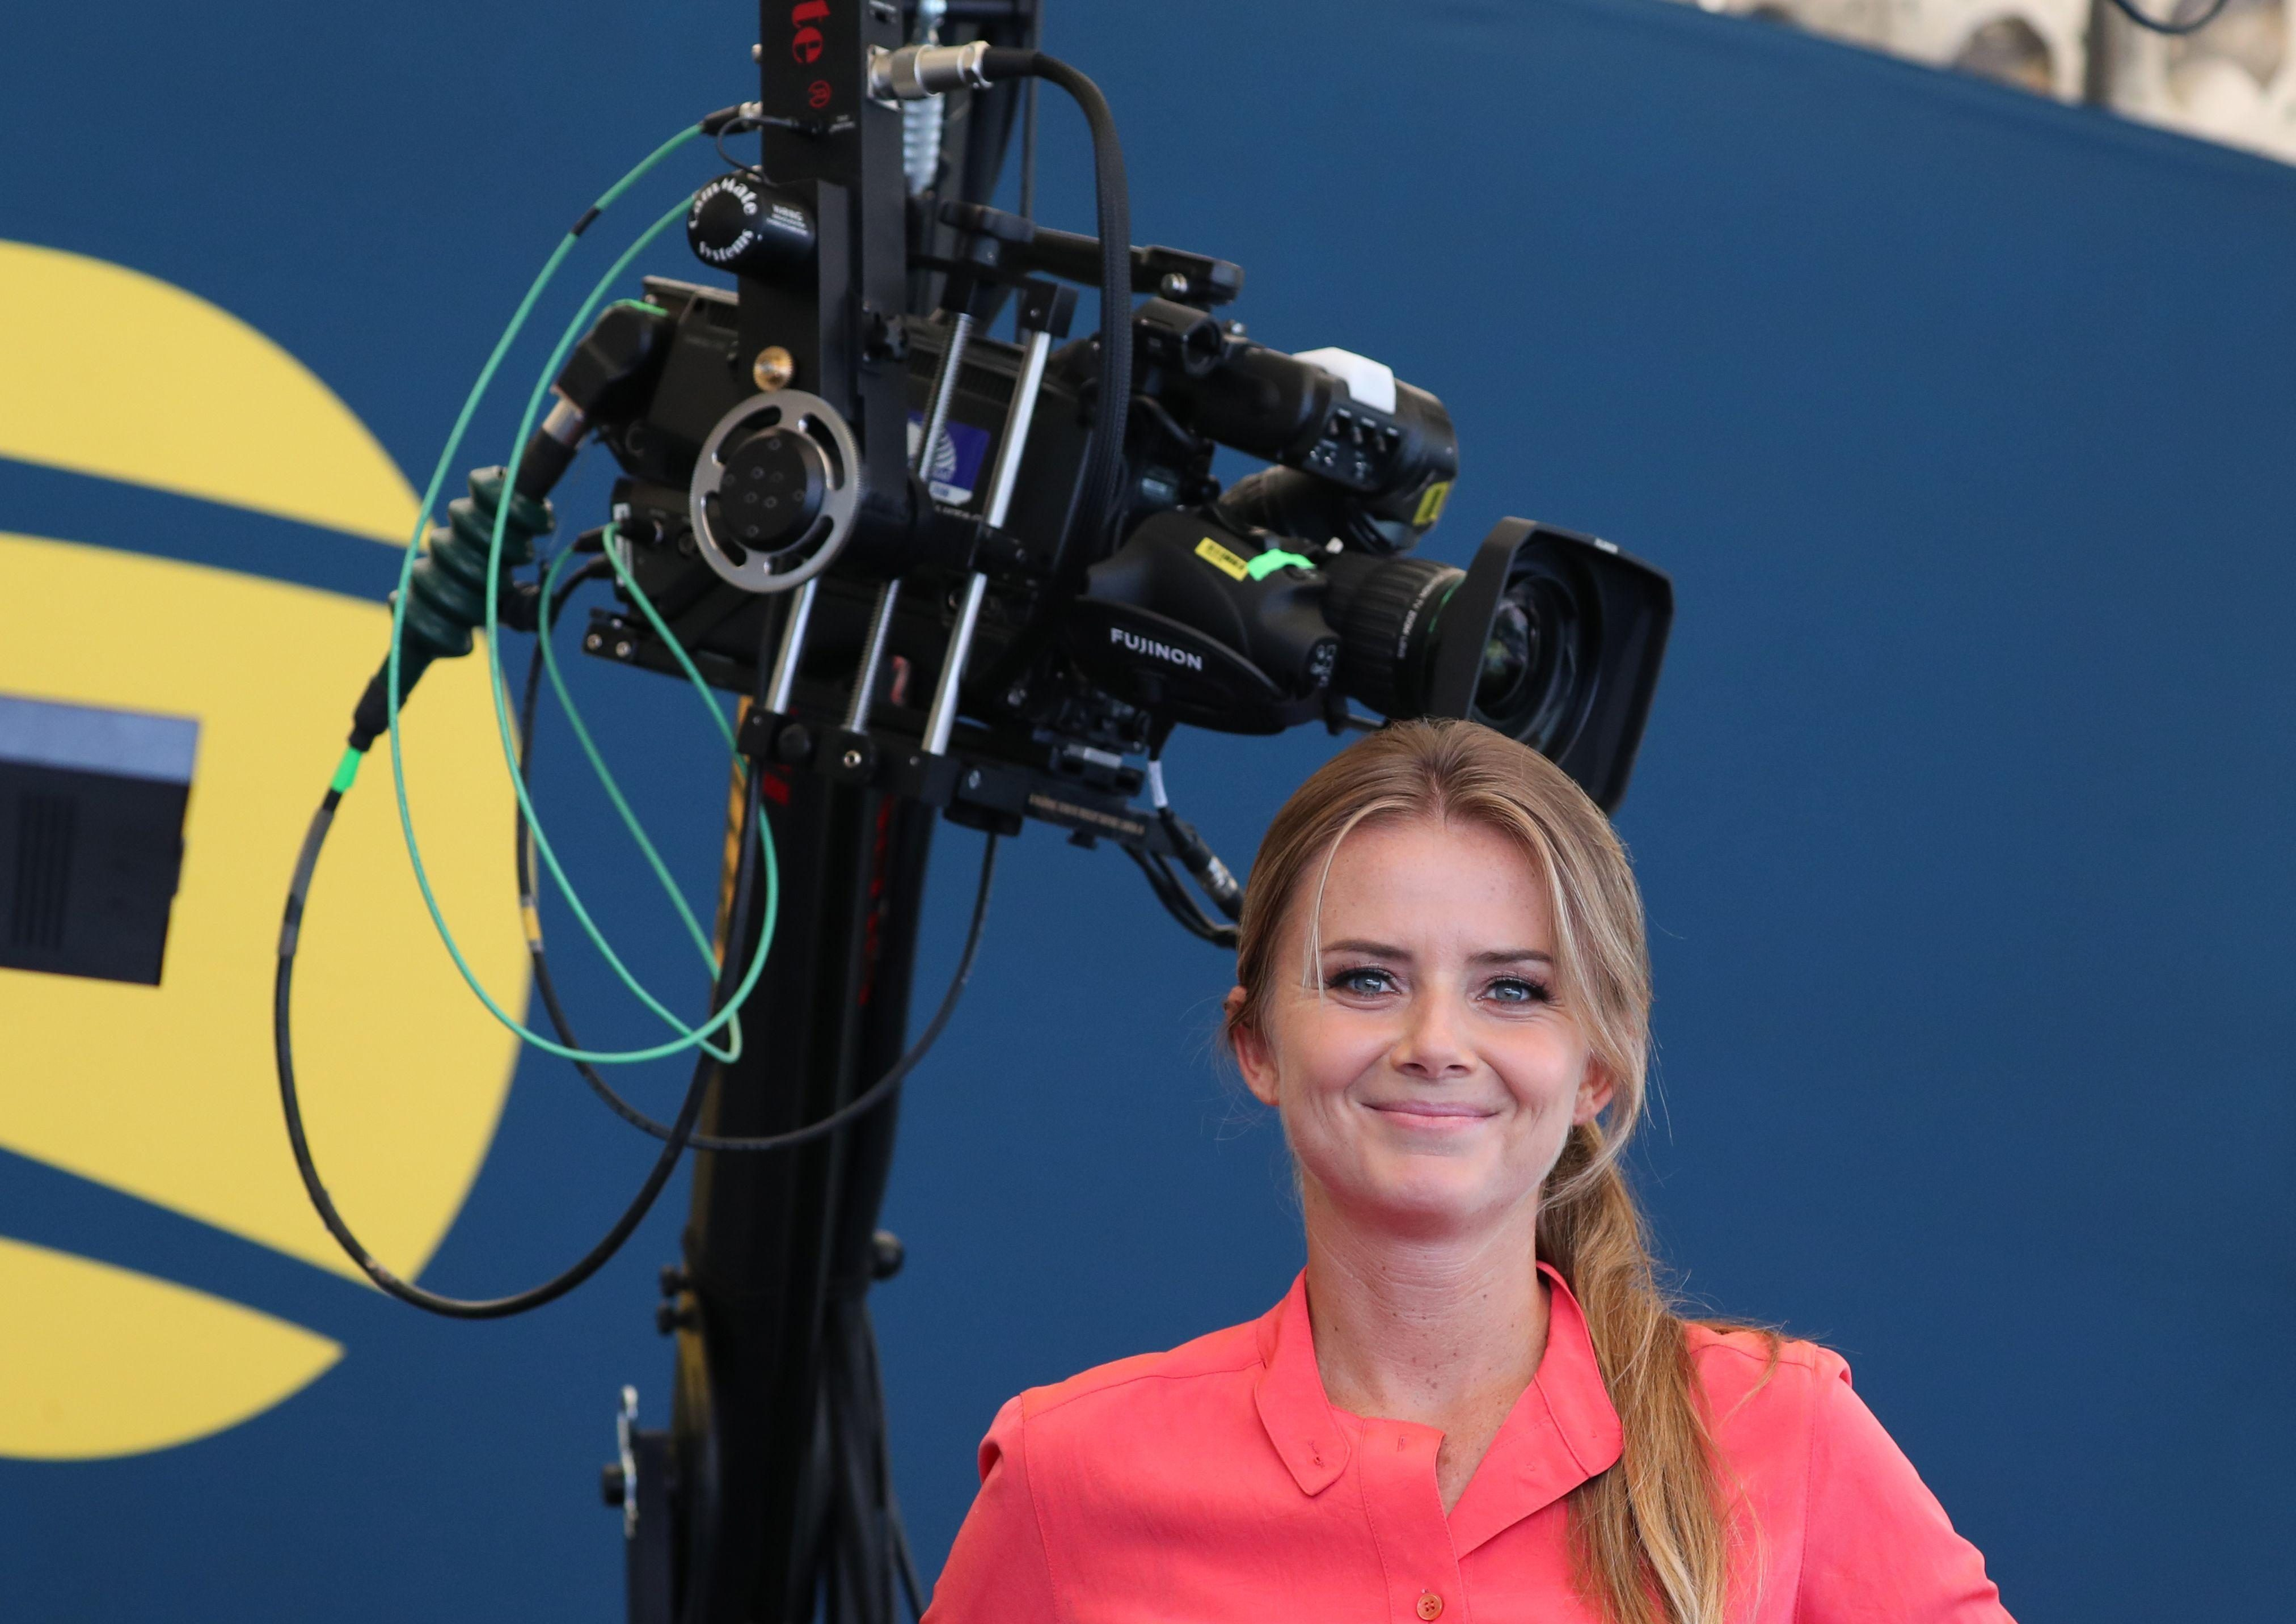 Daniela Hantuchova is one of several hosts and experts on hand for Amazon Prime's coverage